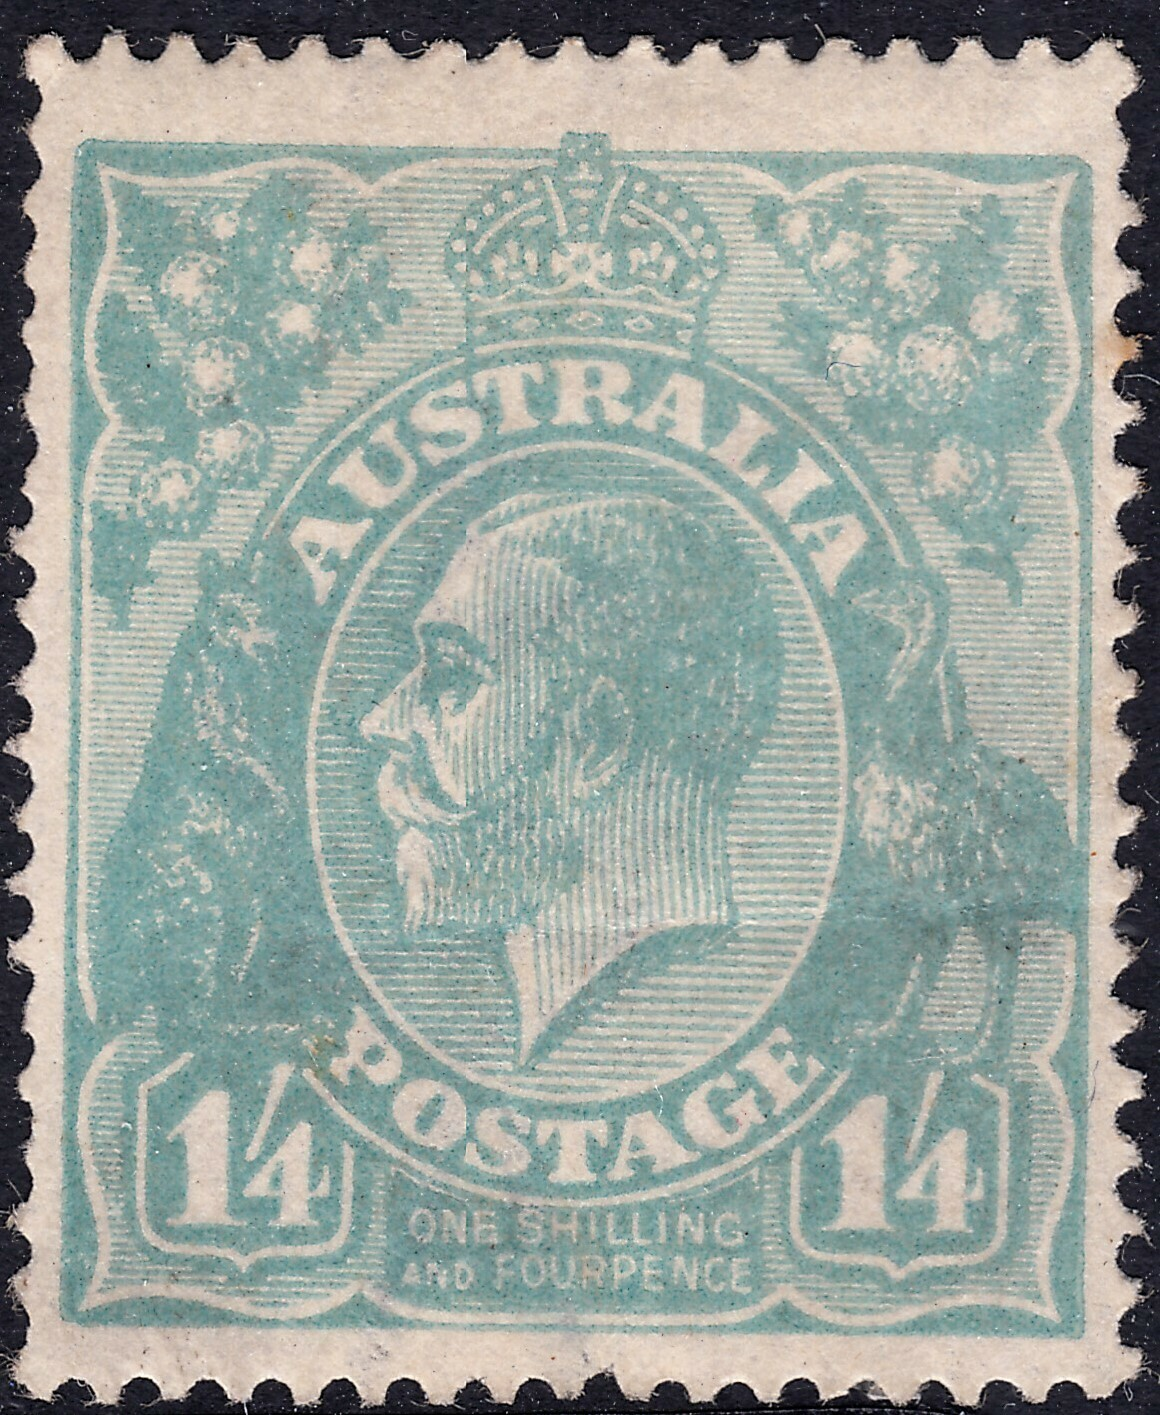 Australia 1920 KGV 1/4d Pale Blue MH See Notes